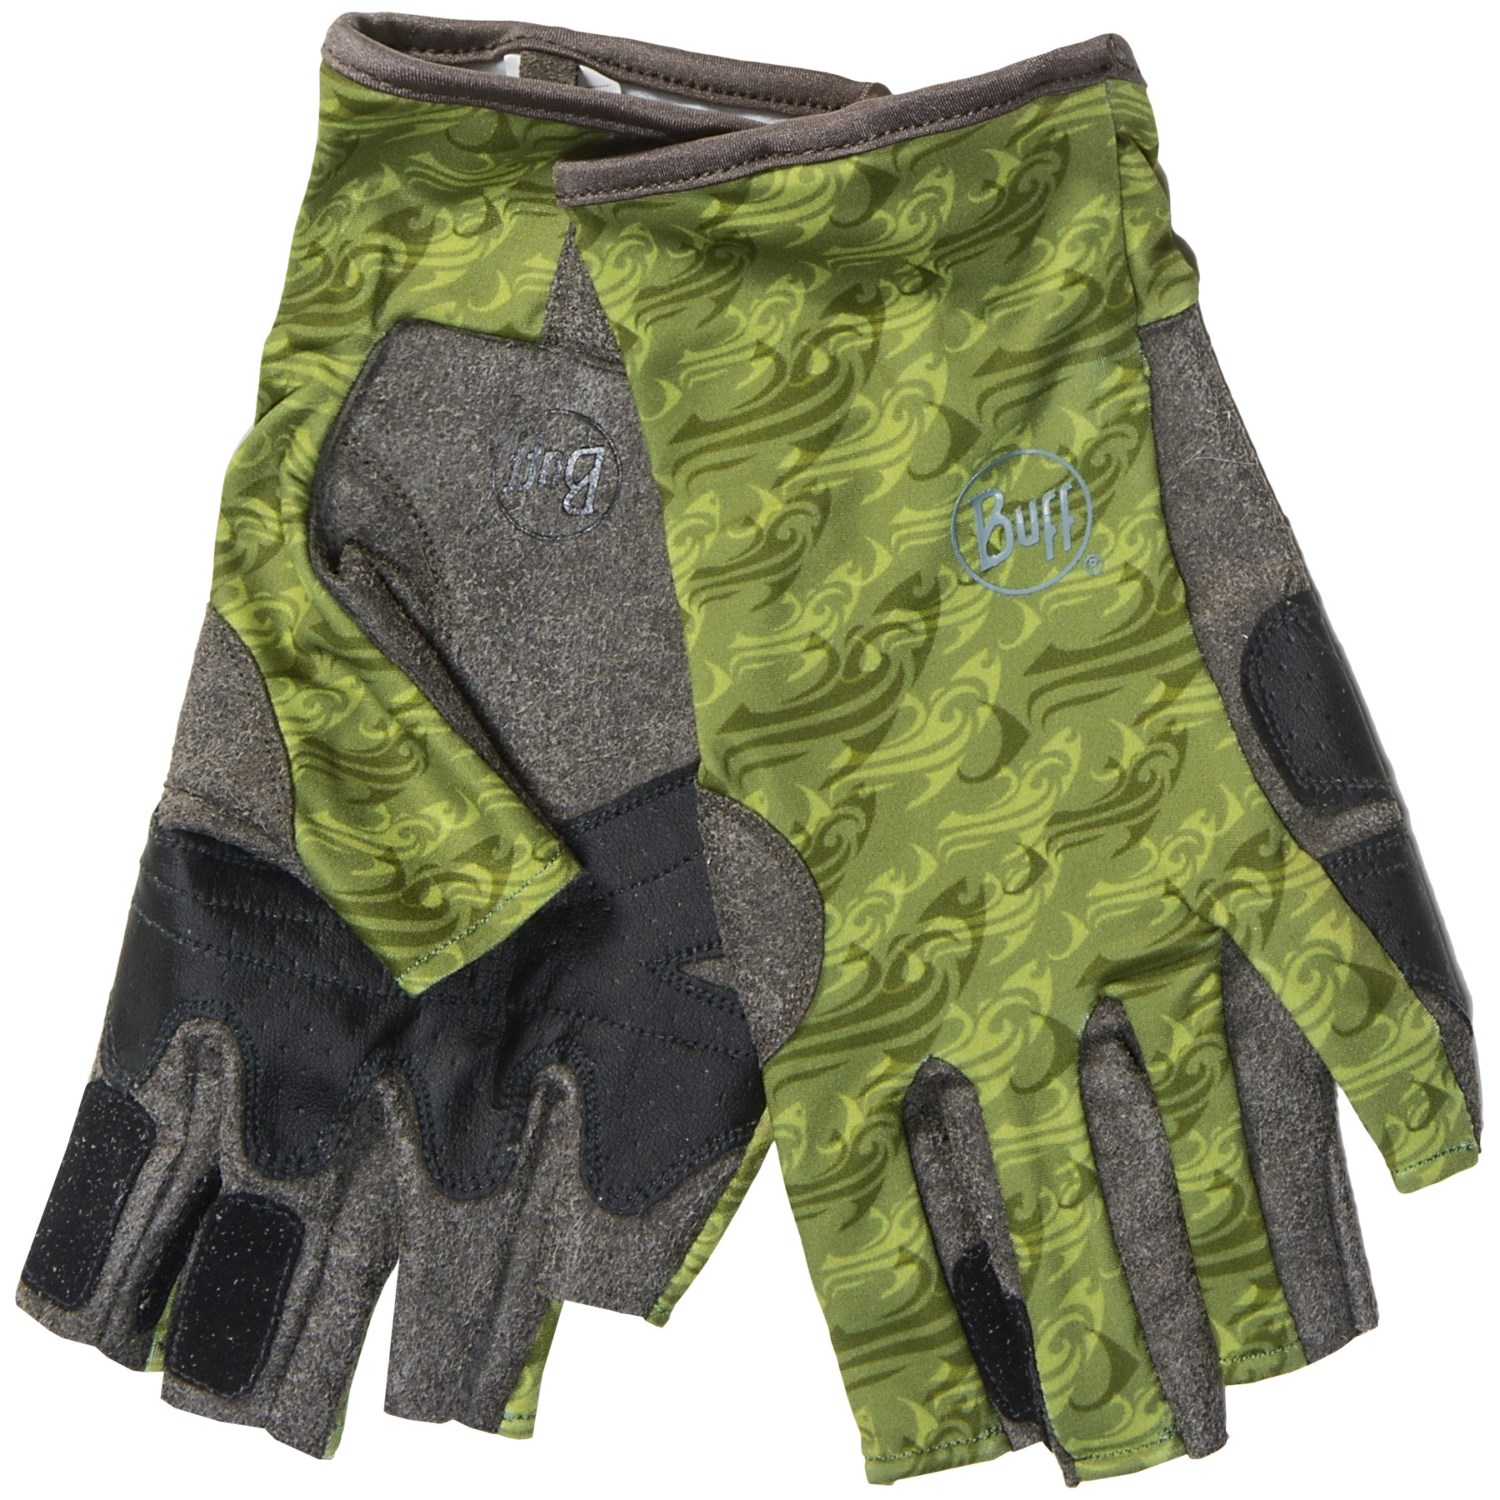 Buff pro series angler 2 gloves for men and women save 37 for Buff fishing gloves